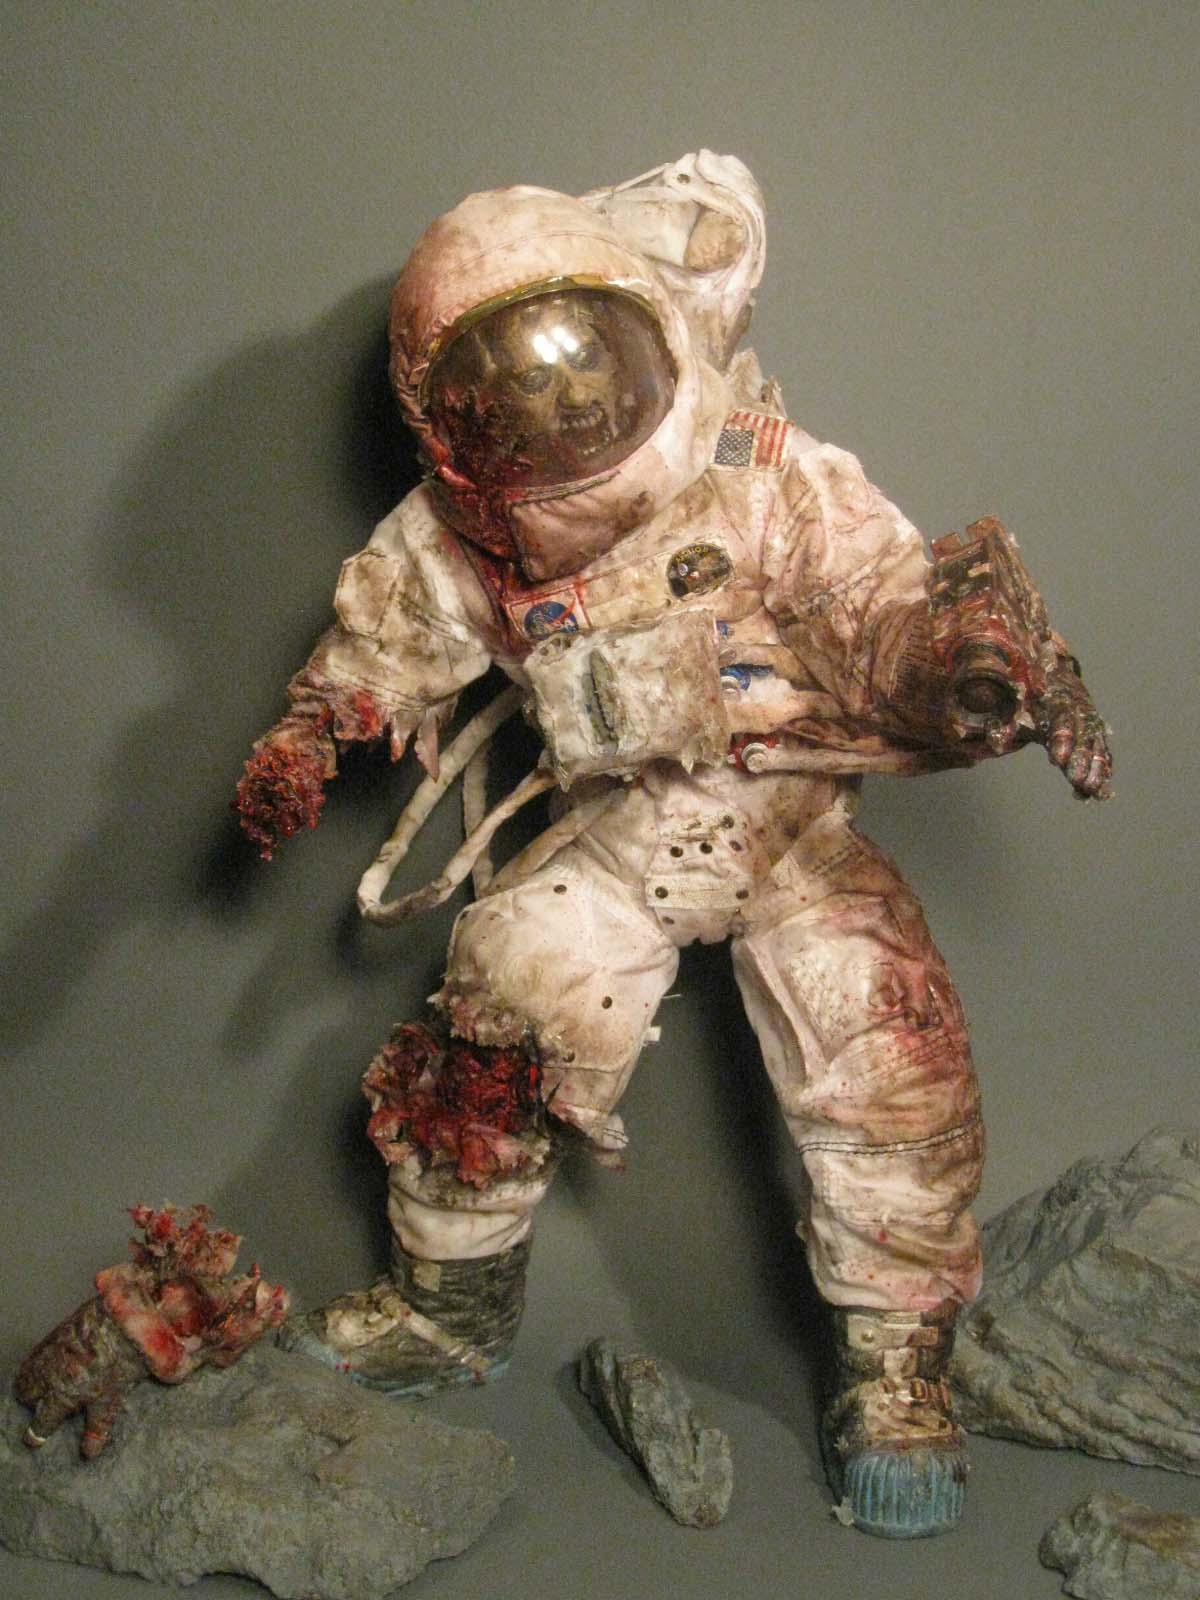 apollo 18 zombie - photo #26